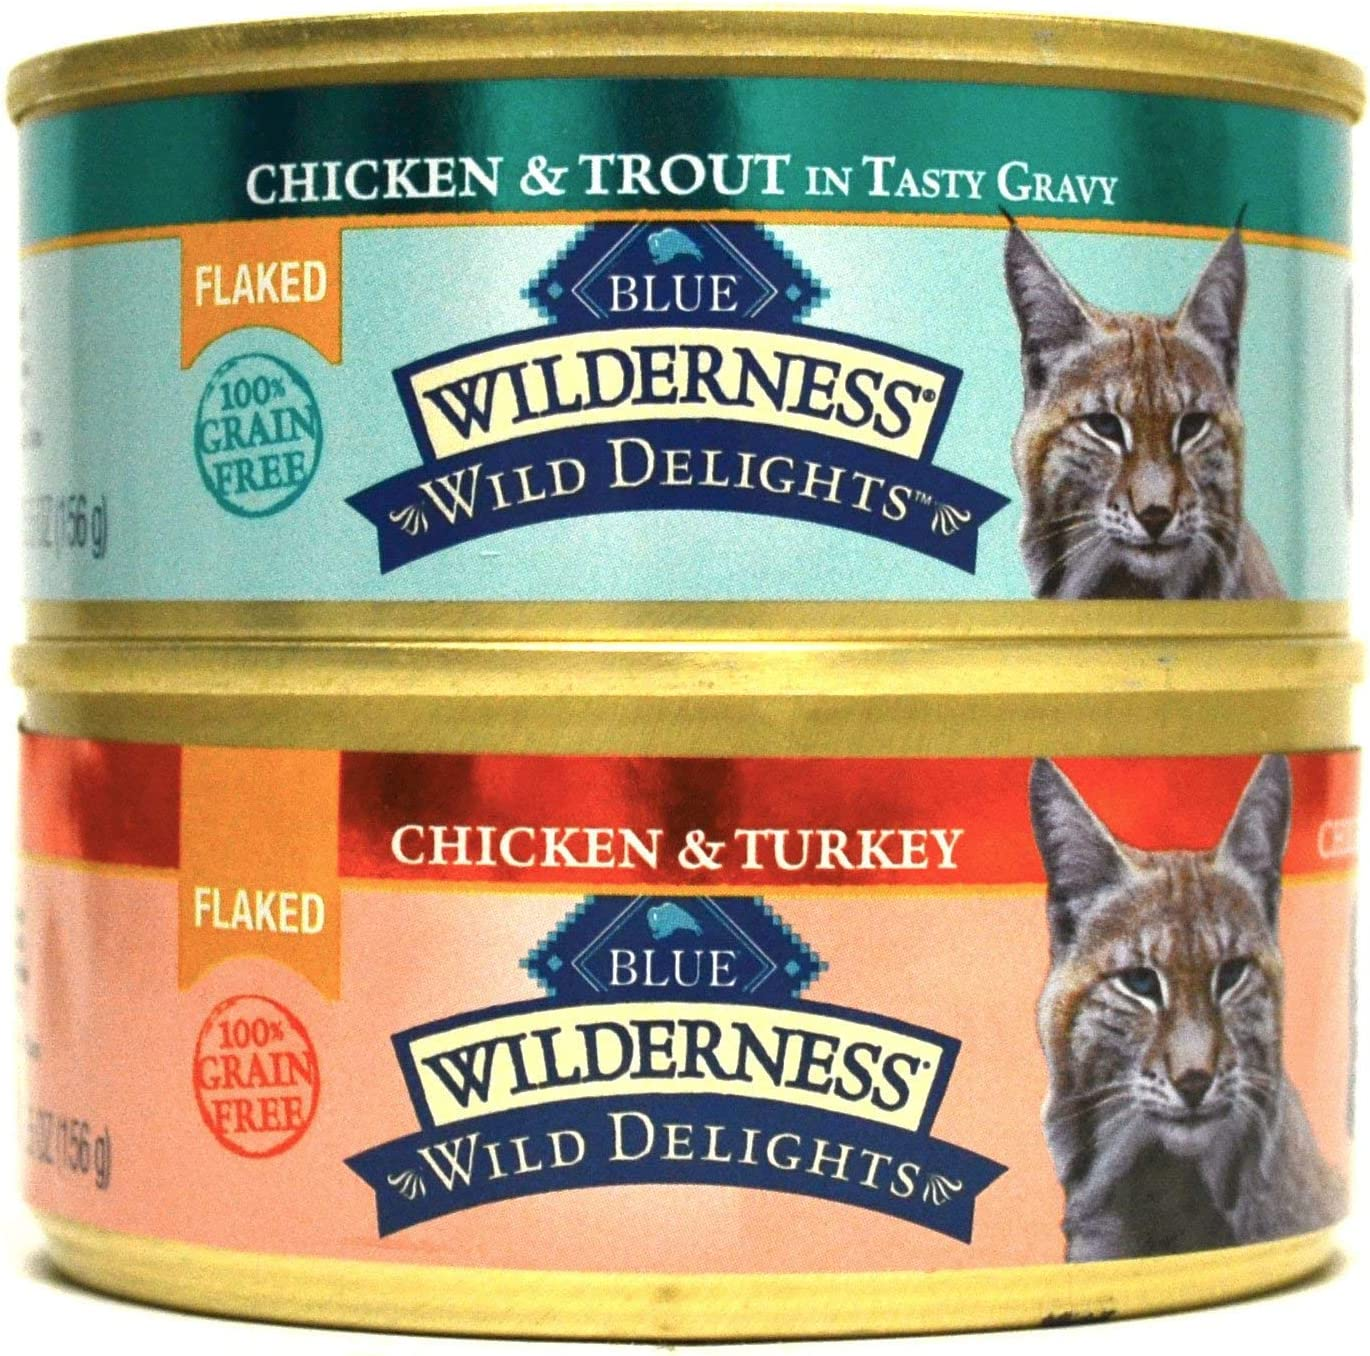 Blue Wilderness Grain-Free Wild Delights Flaked Cat Food Variety Pack Box - 2 Flavors (Chicken & Trout & Chicken & Turkey) - 12 (5.5 Ounce) Cans - 6 of Each Flavor